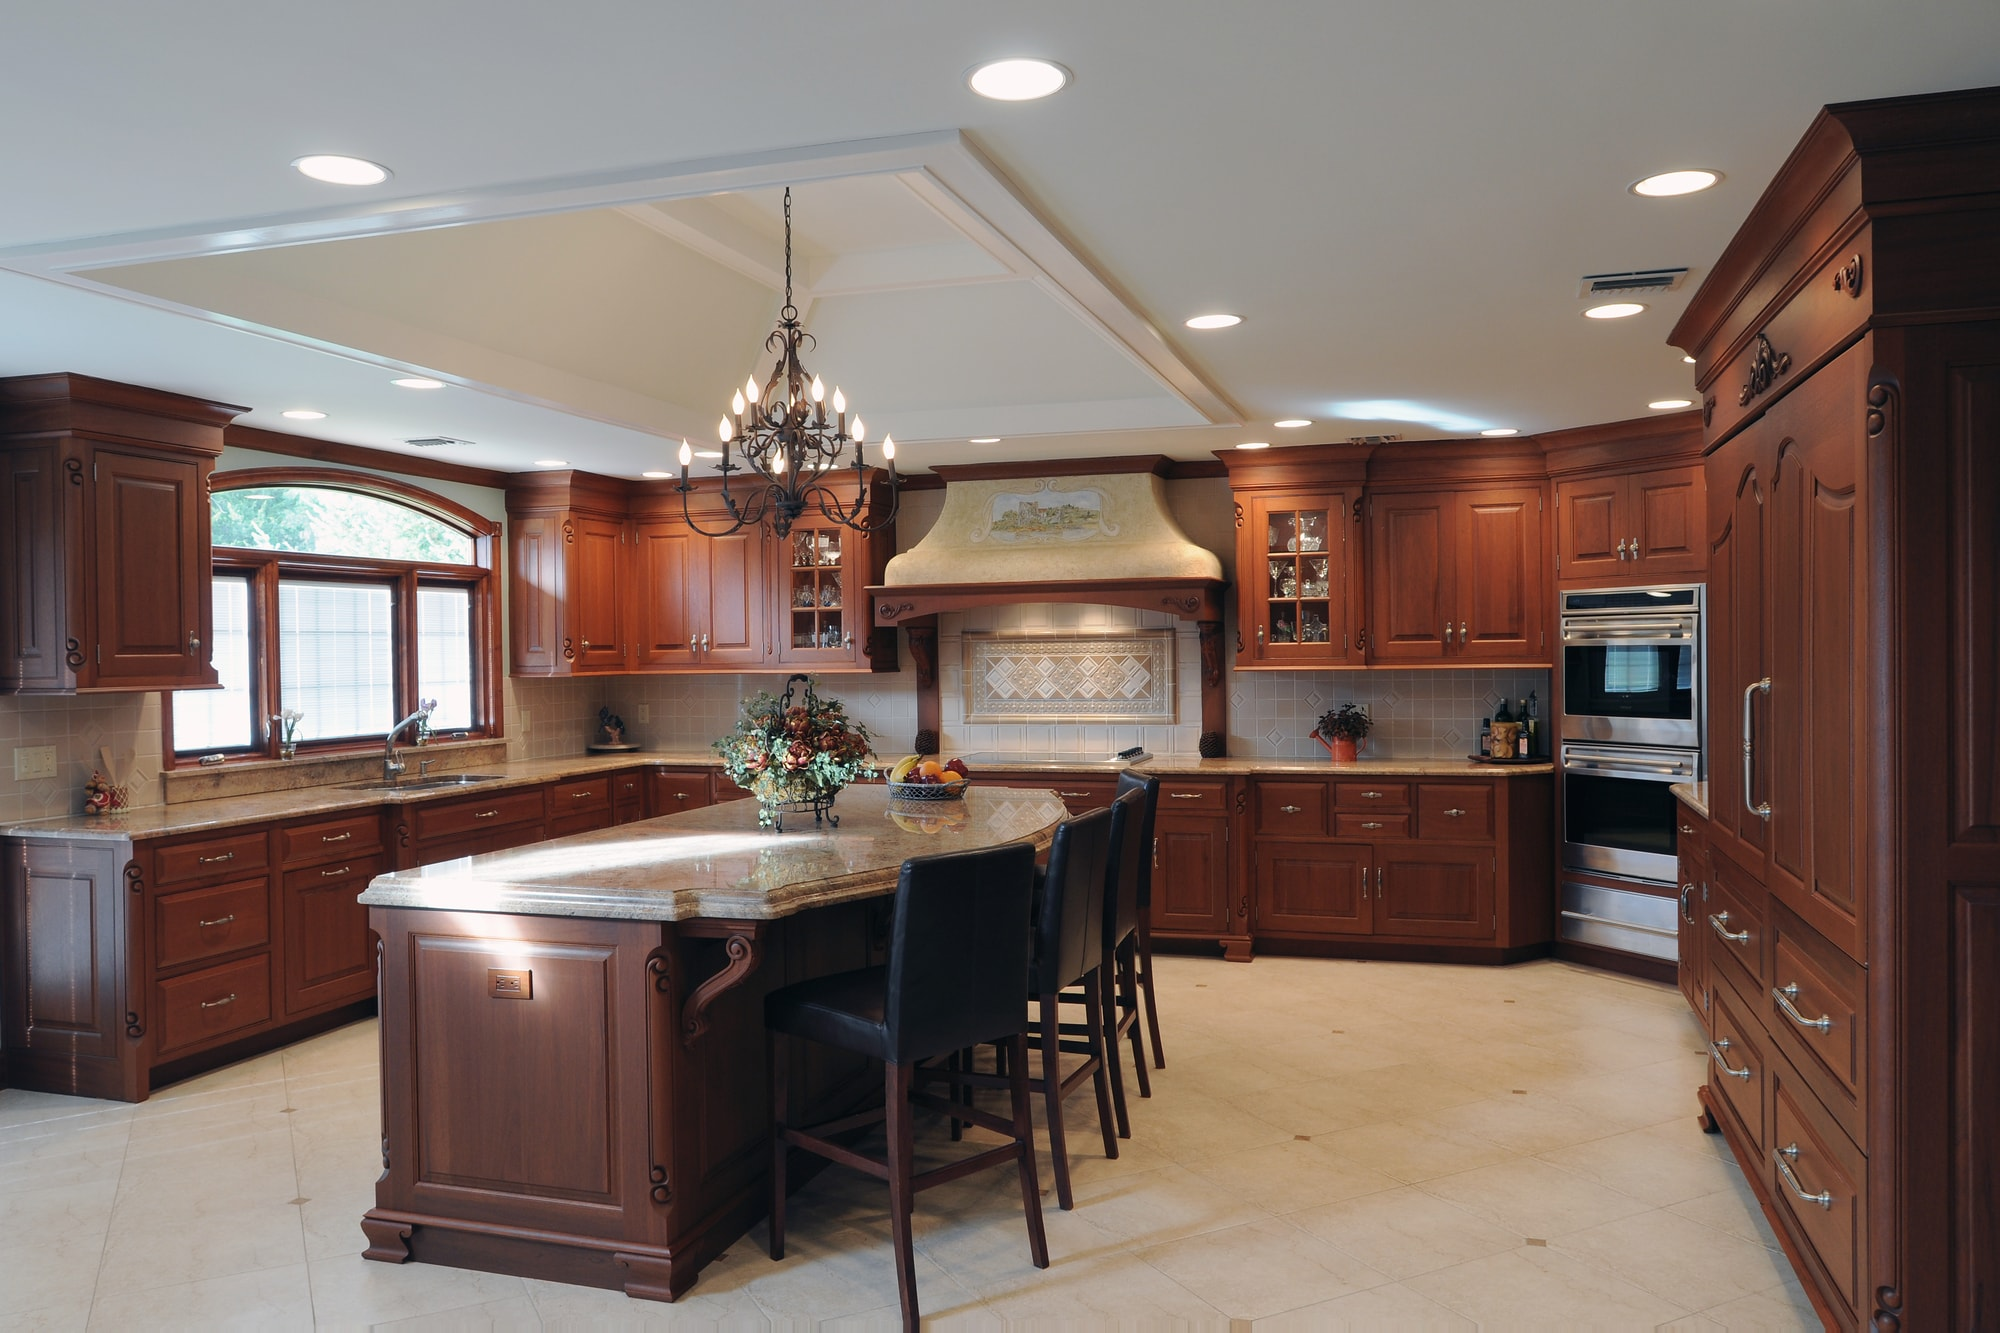 Traditional style kitchen with spacious floor